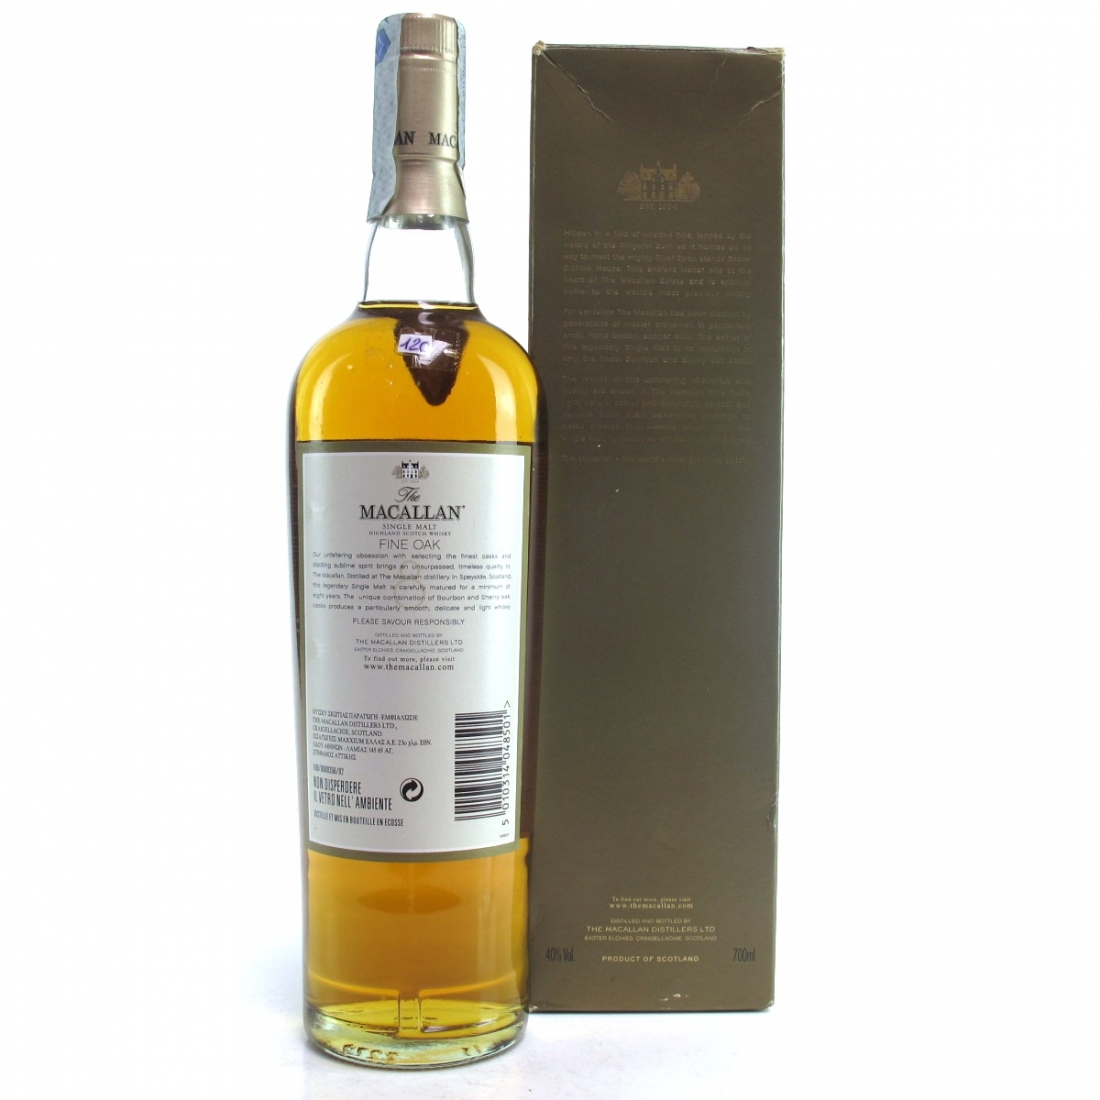 Macallan 8 Year Old Fine Oak